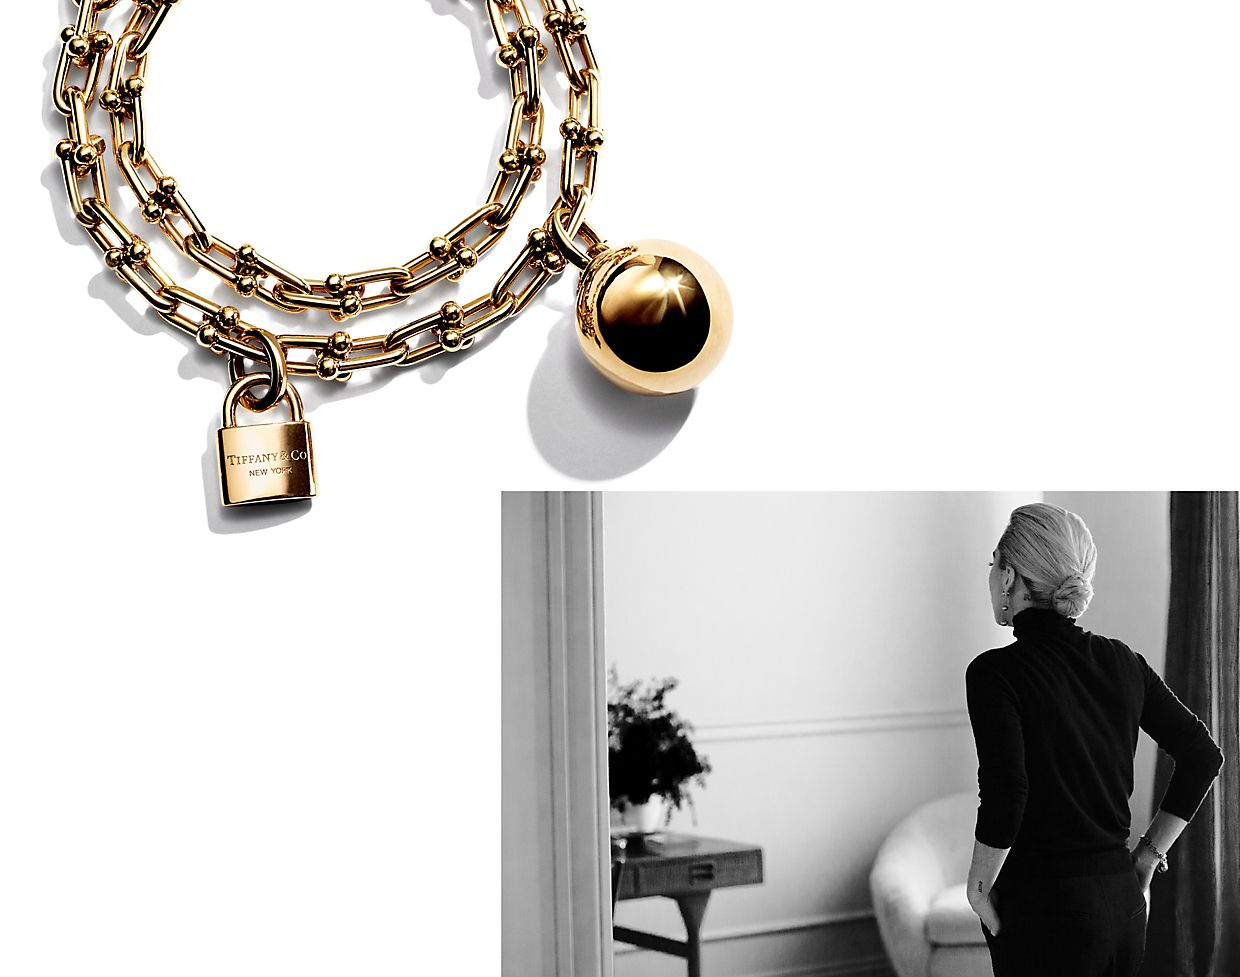 The New Tiffany City HardWear Jewelry Collection Pays Tribute to the Strength of the Modern Woman